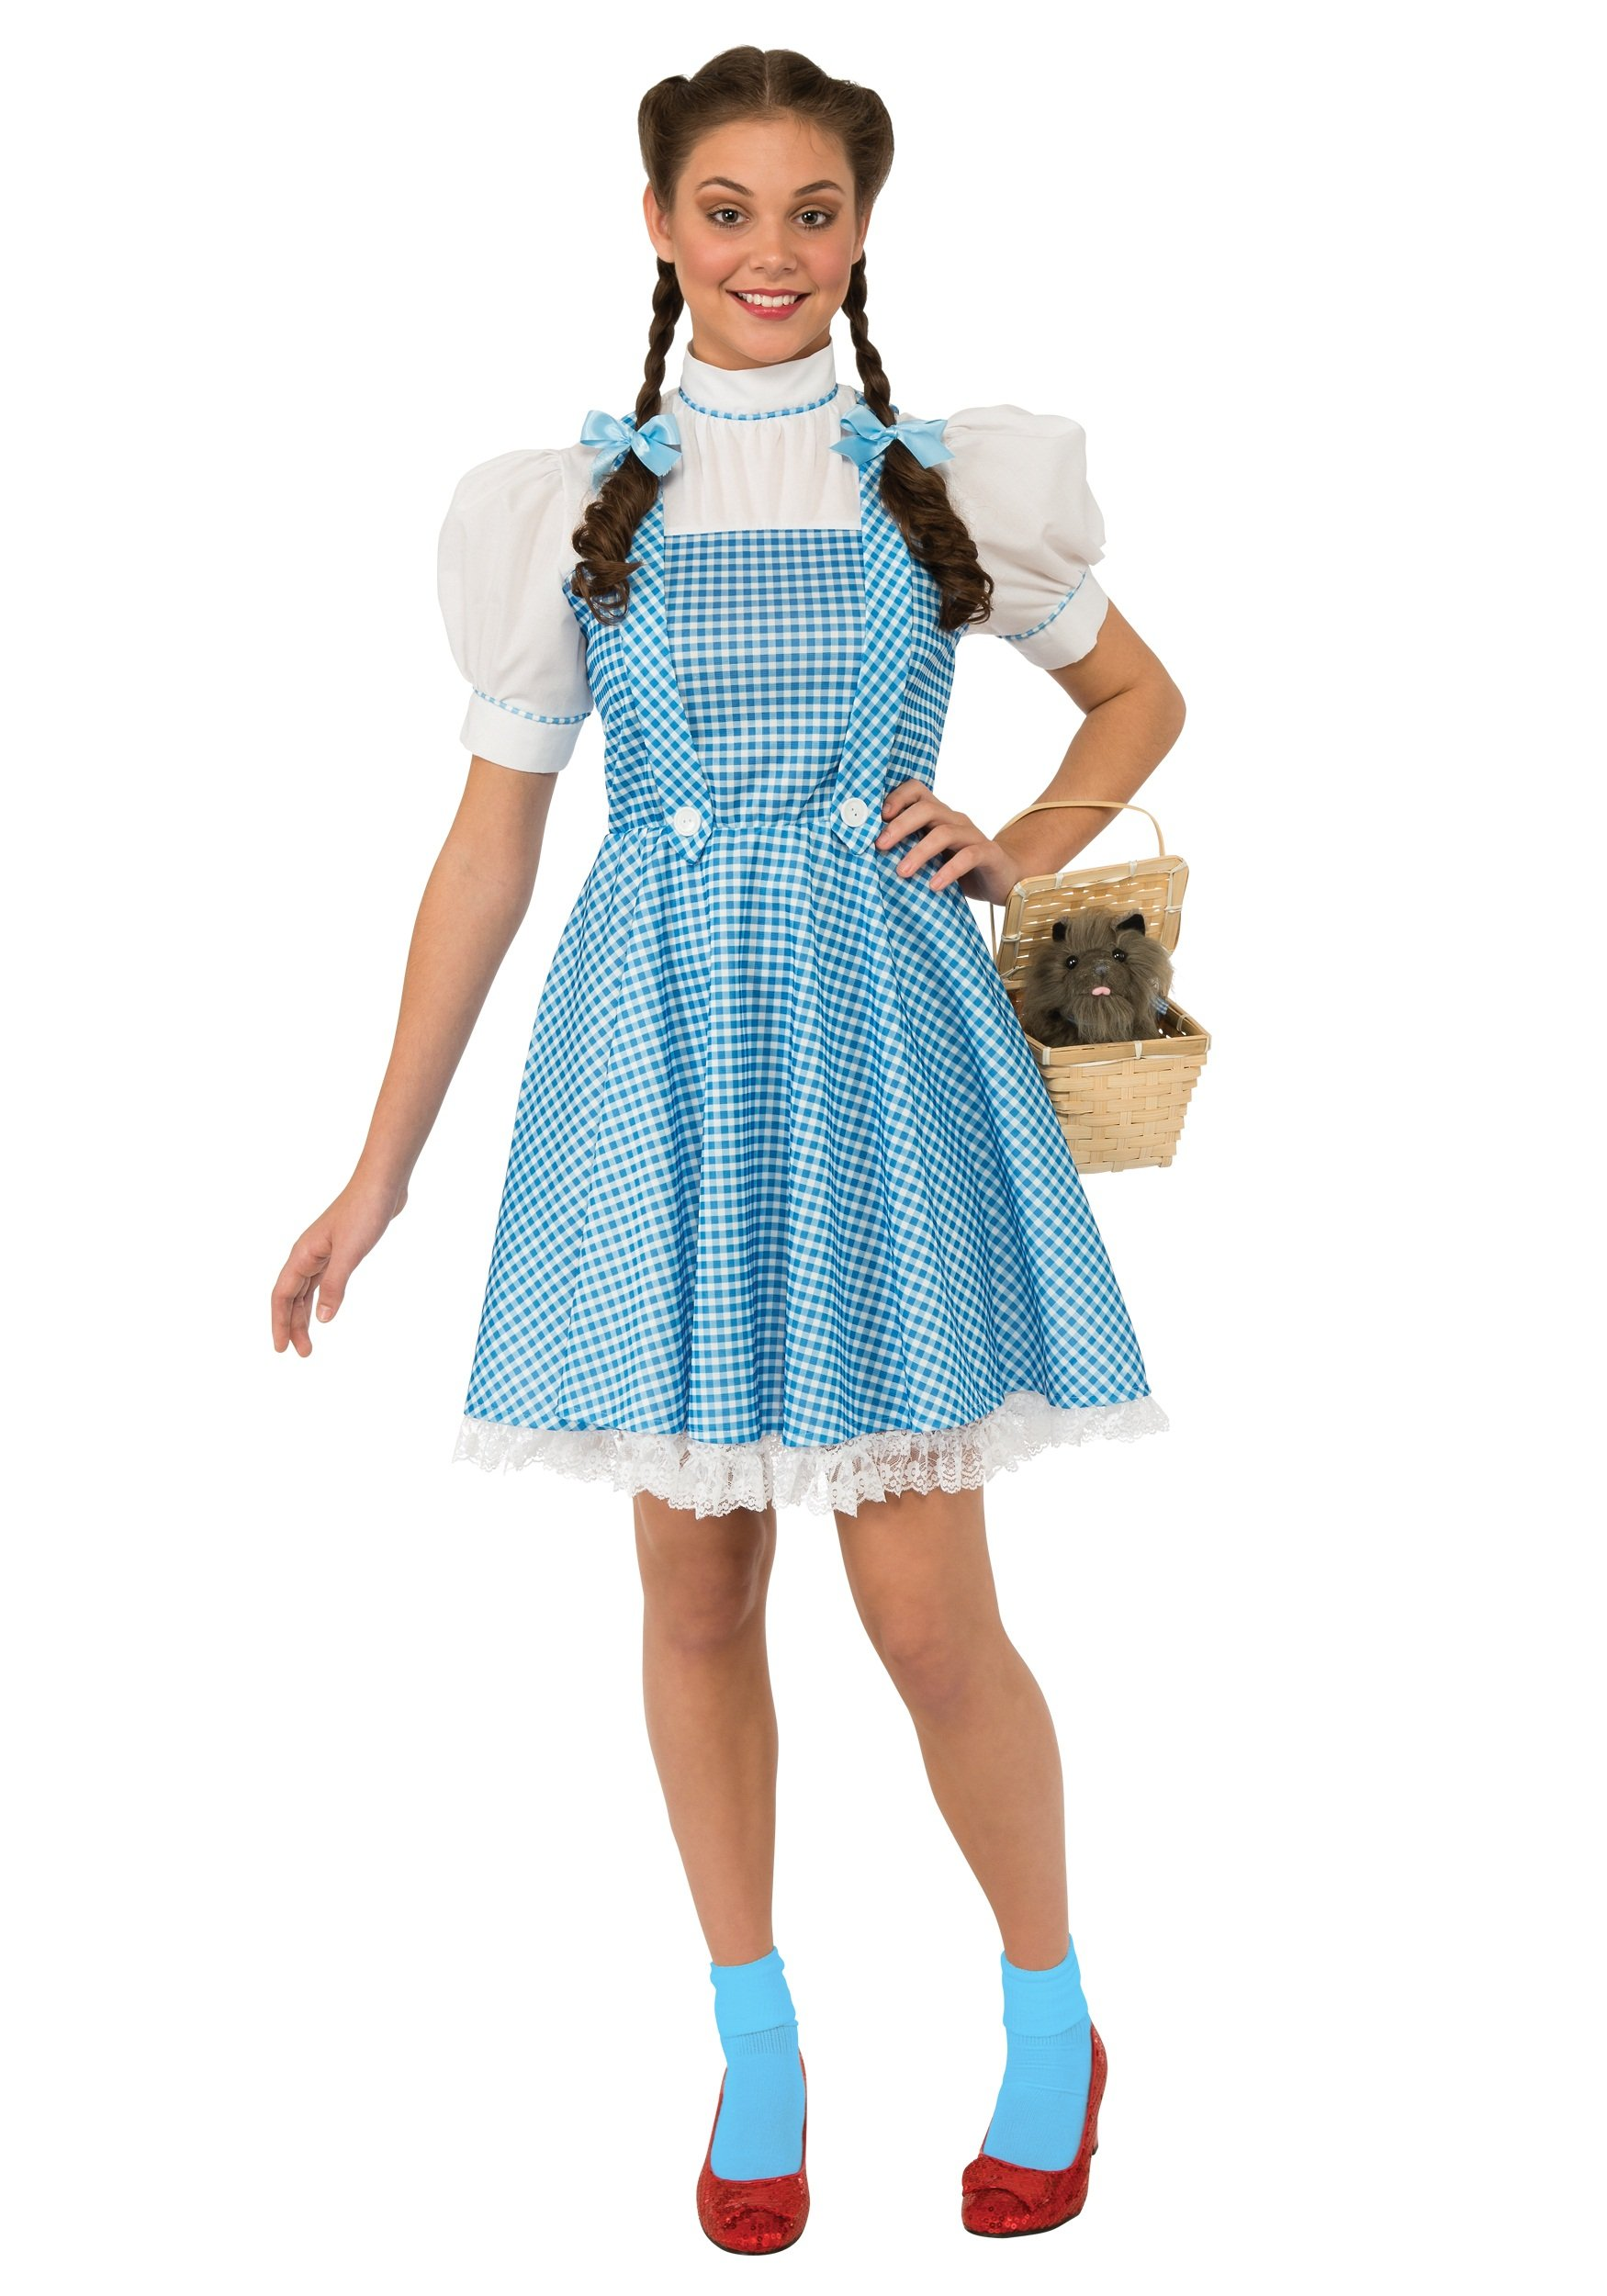 Women's Adult Dorothy Costume - S by Rubie's (Image #1)